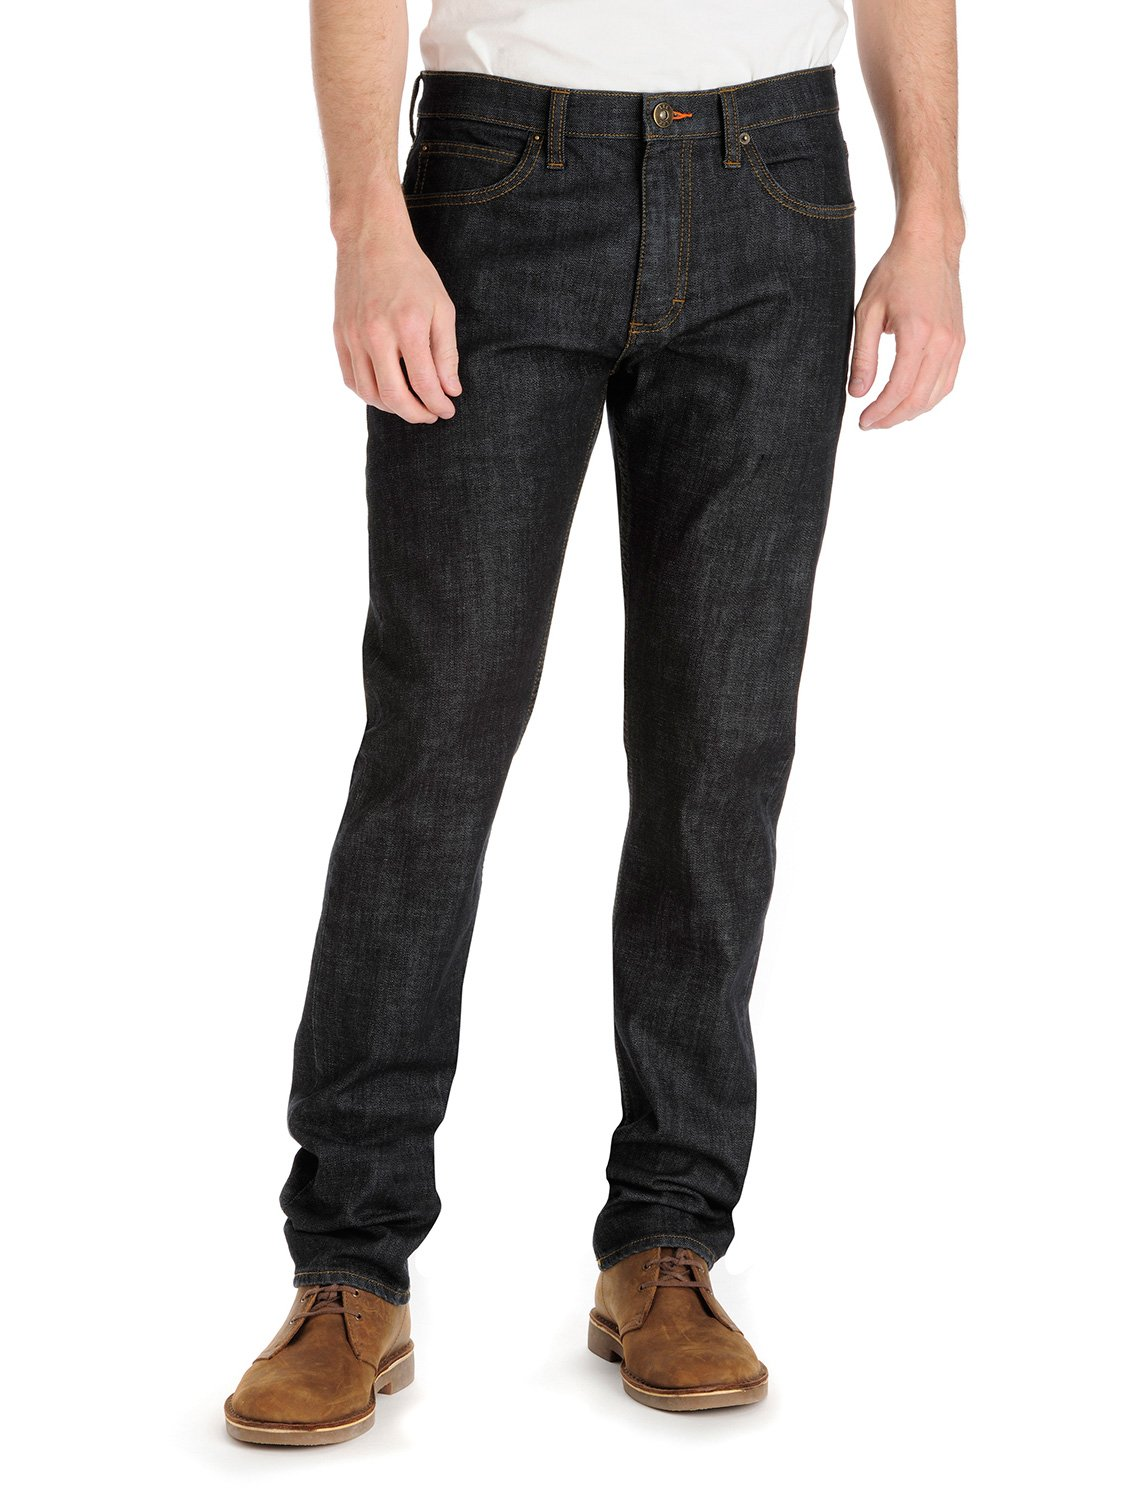 Lee Men's Modern Series Slim Fit Jeans - Lone Wolf, Lone Wolf, 40X30 by LEE